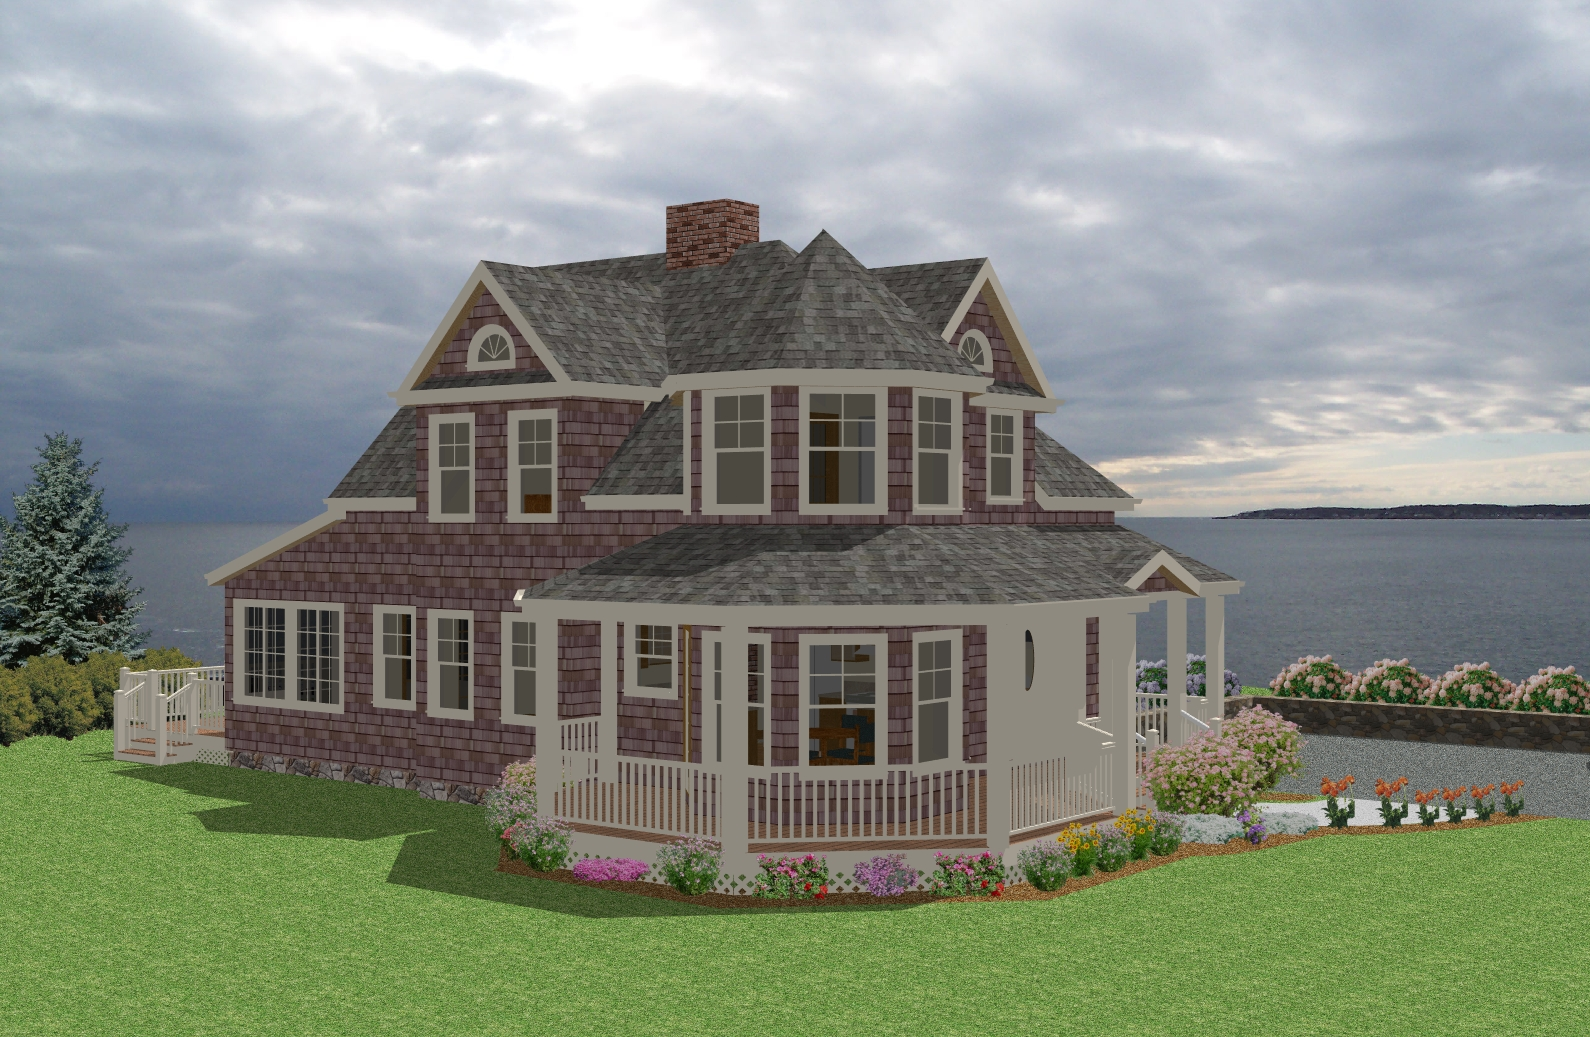 New england cottage house plans find house plans Find house plans